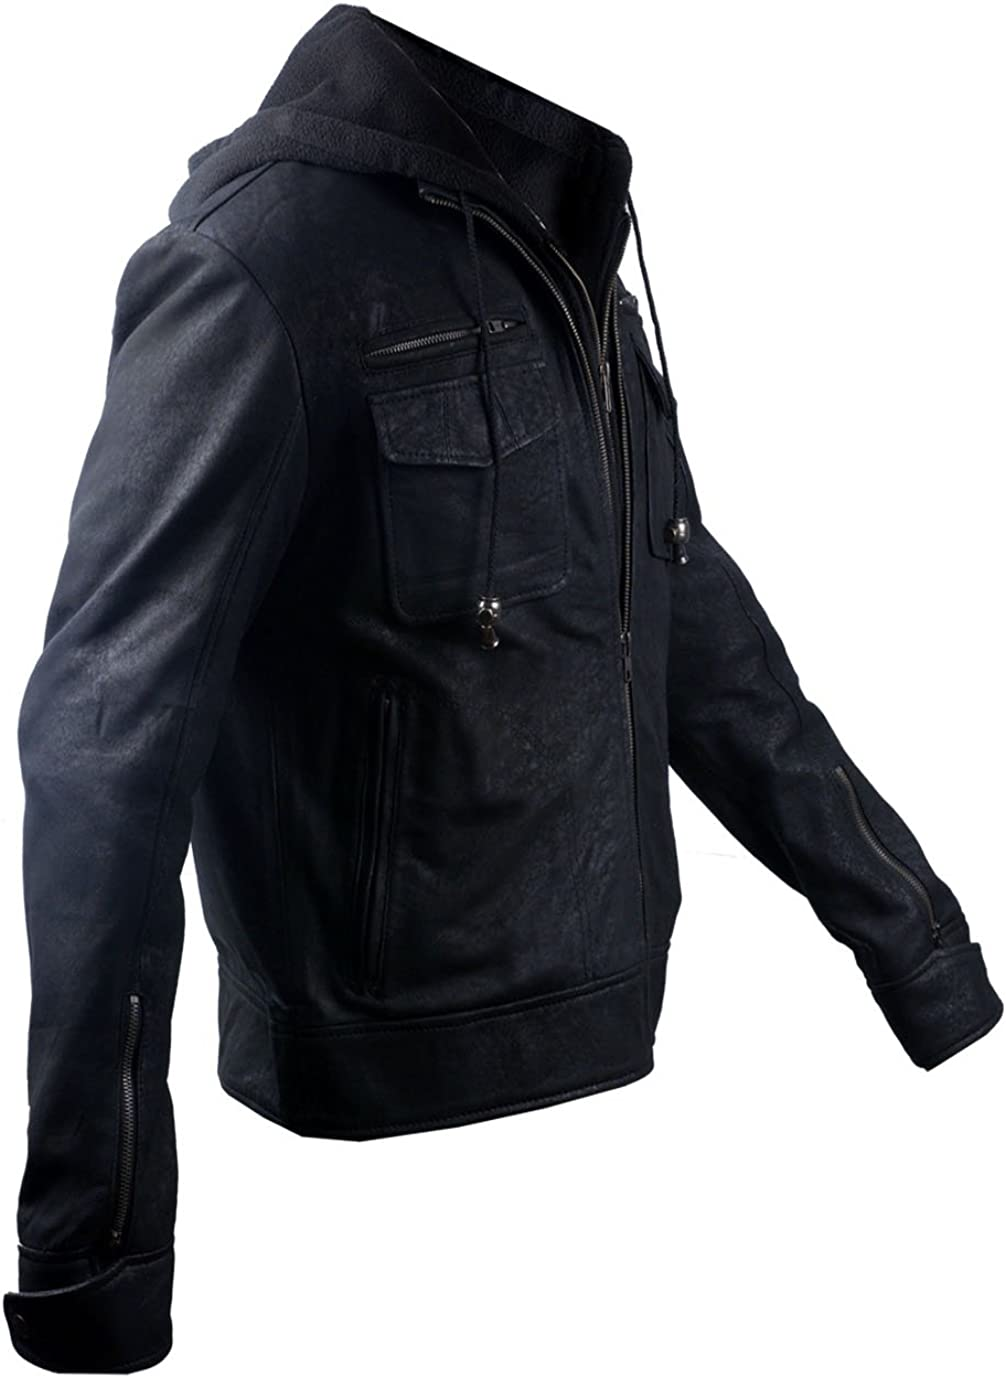 Empirical Selection Leather Jackets Men Men/'s Leather Jacket